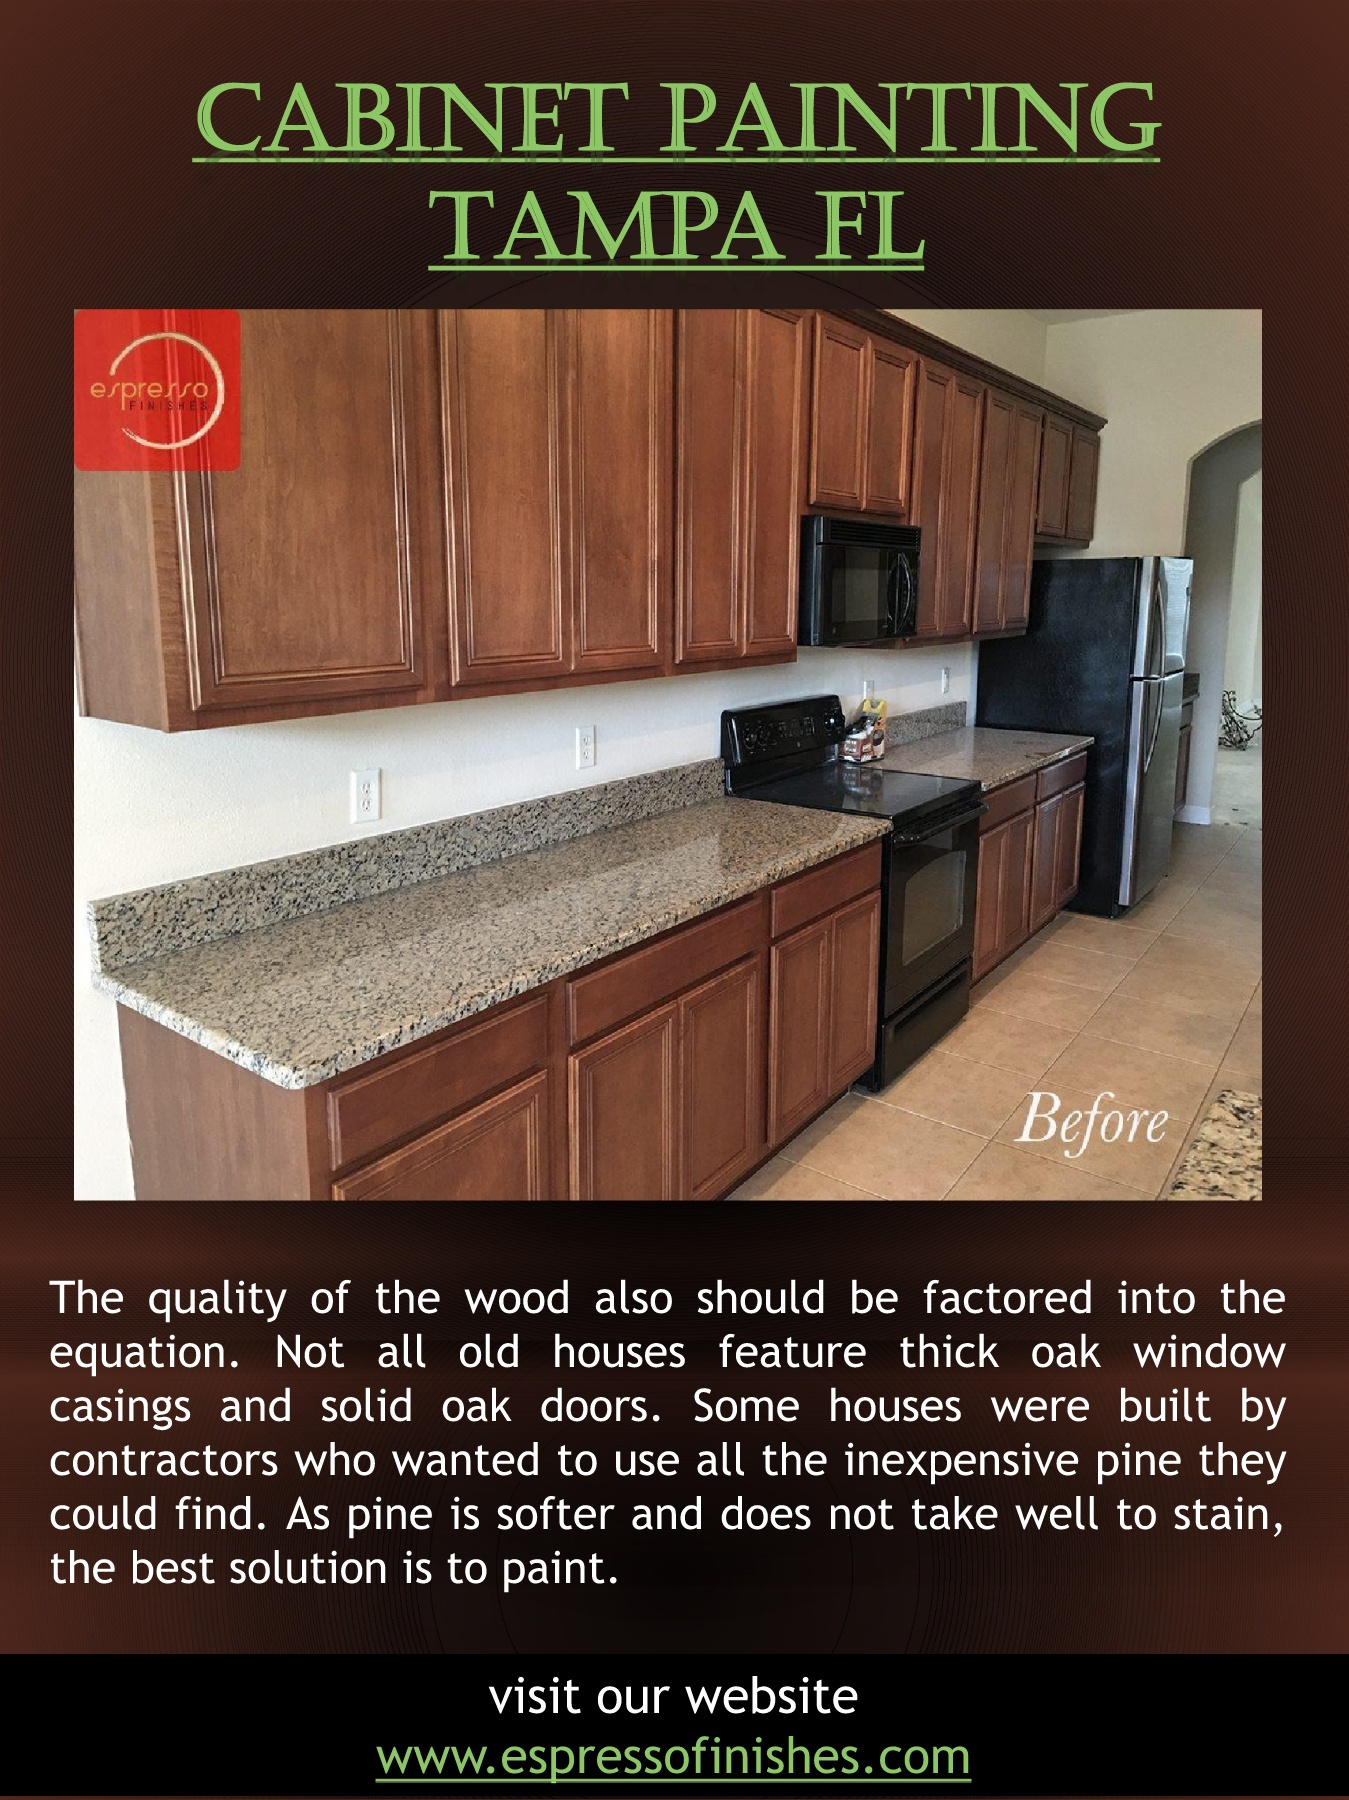 Kitchen Cabinet Painting Tampa Converted Pages 1 20 Text Version Anyflip